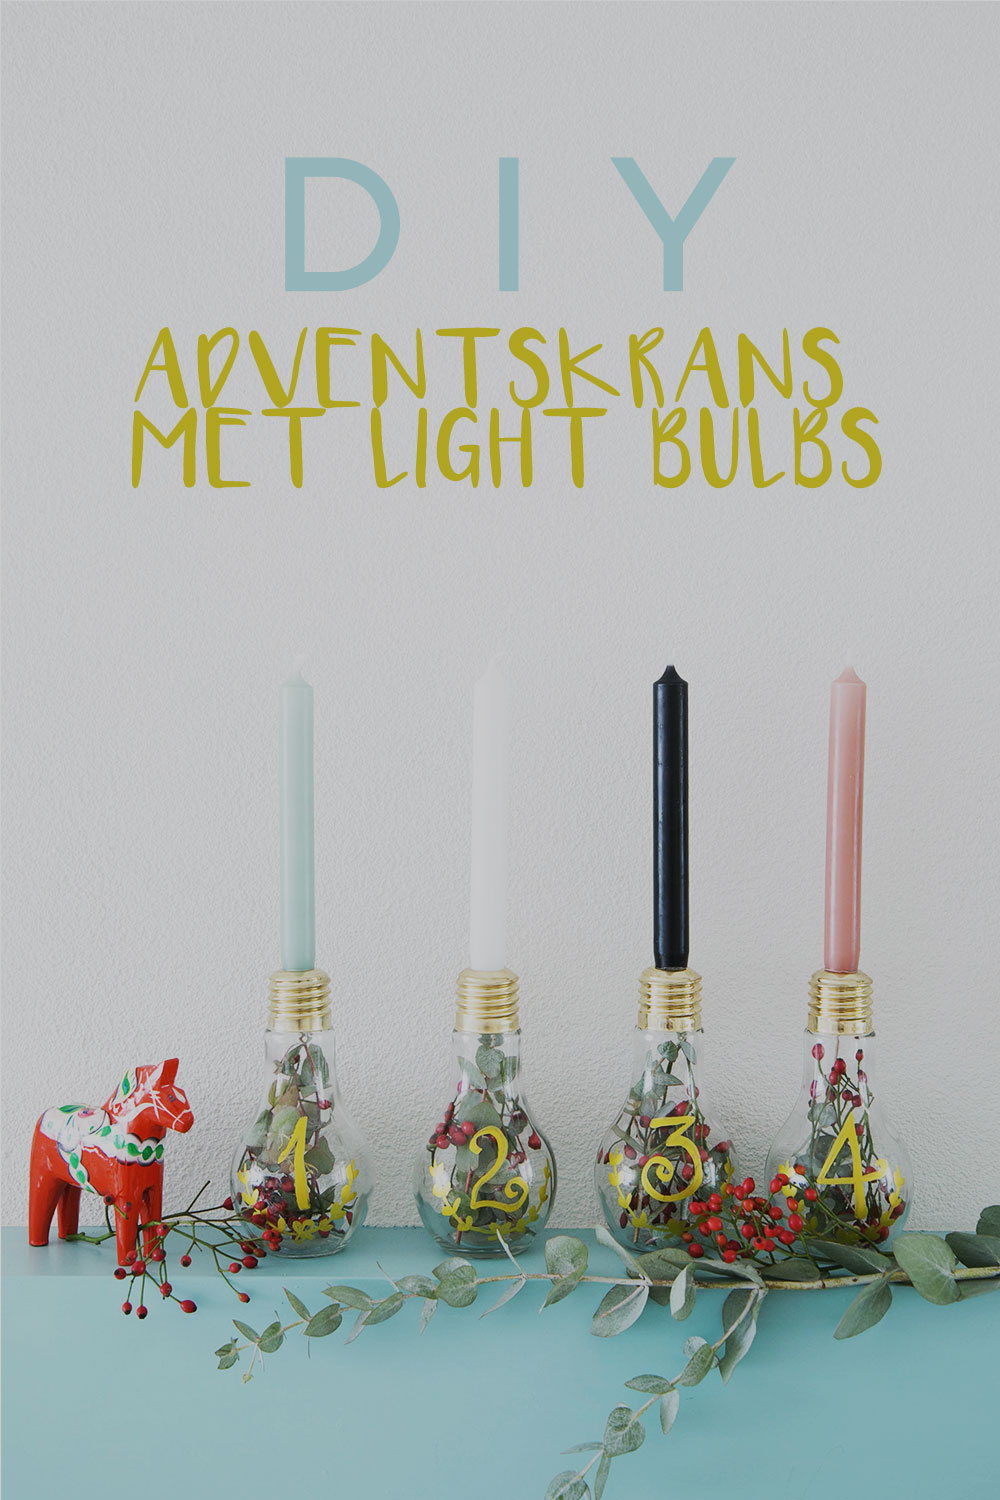 Diy adventskrans met LIght Bulbs